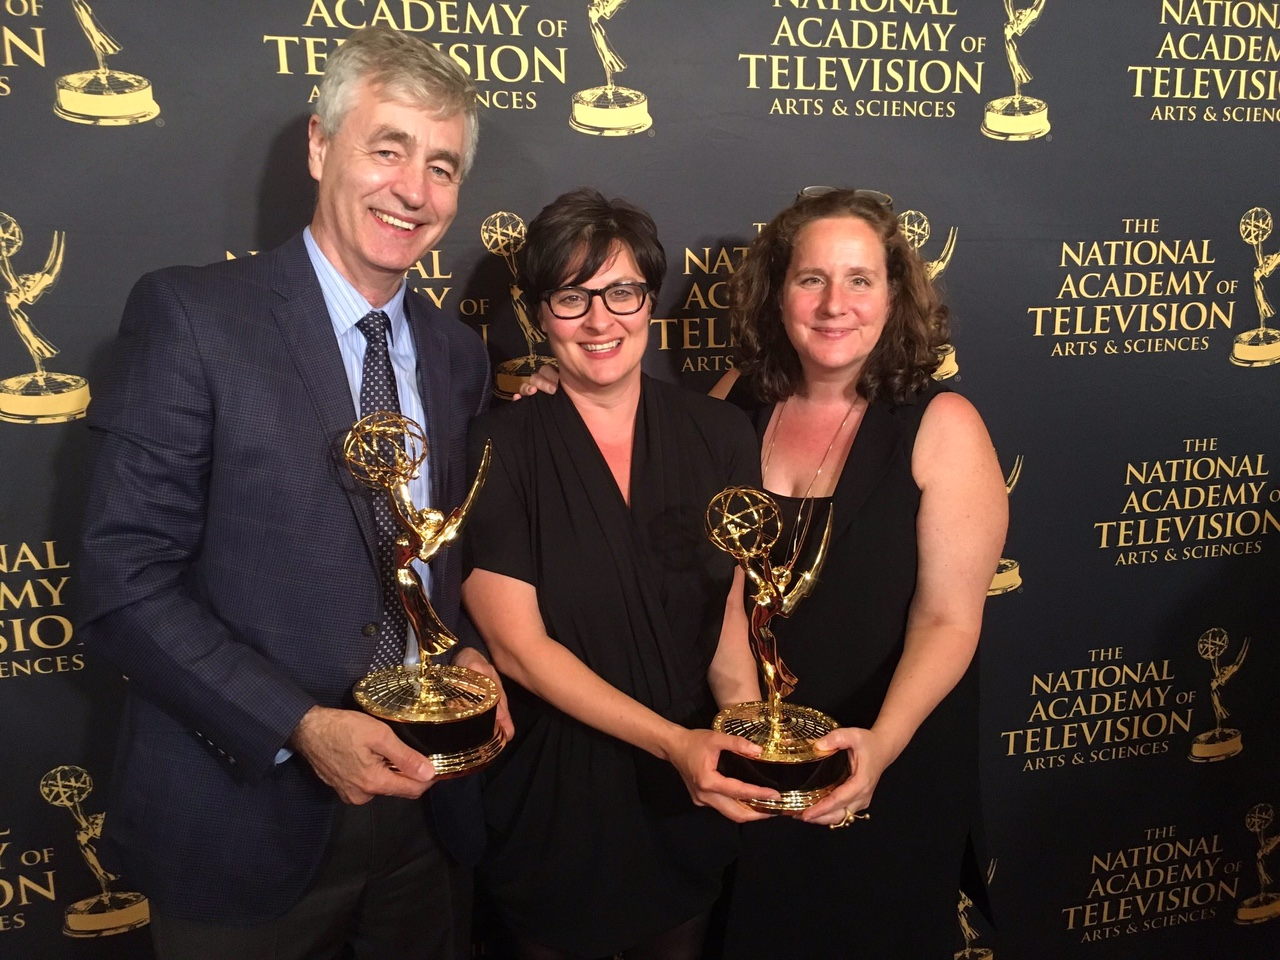 KARTEMQUIN FILM'S TWO EMMYs OF THE NIGHT!